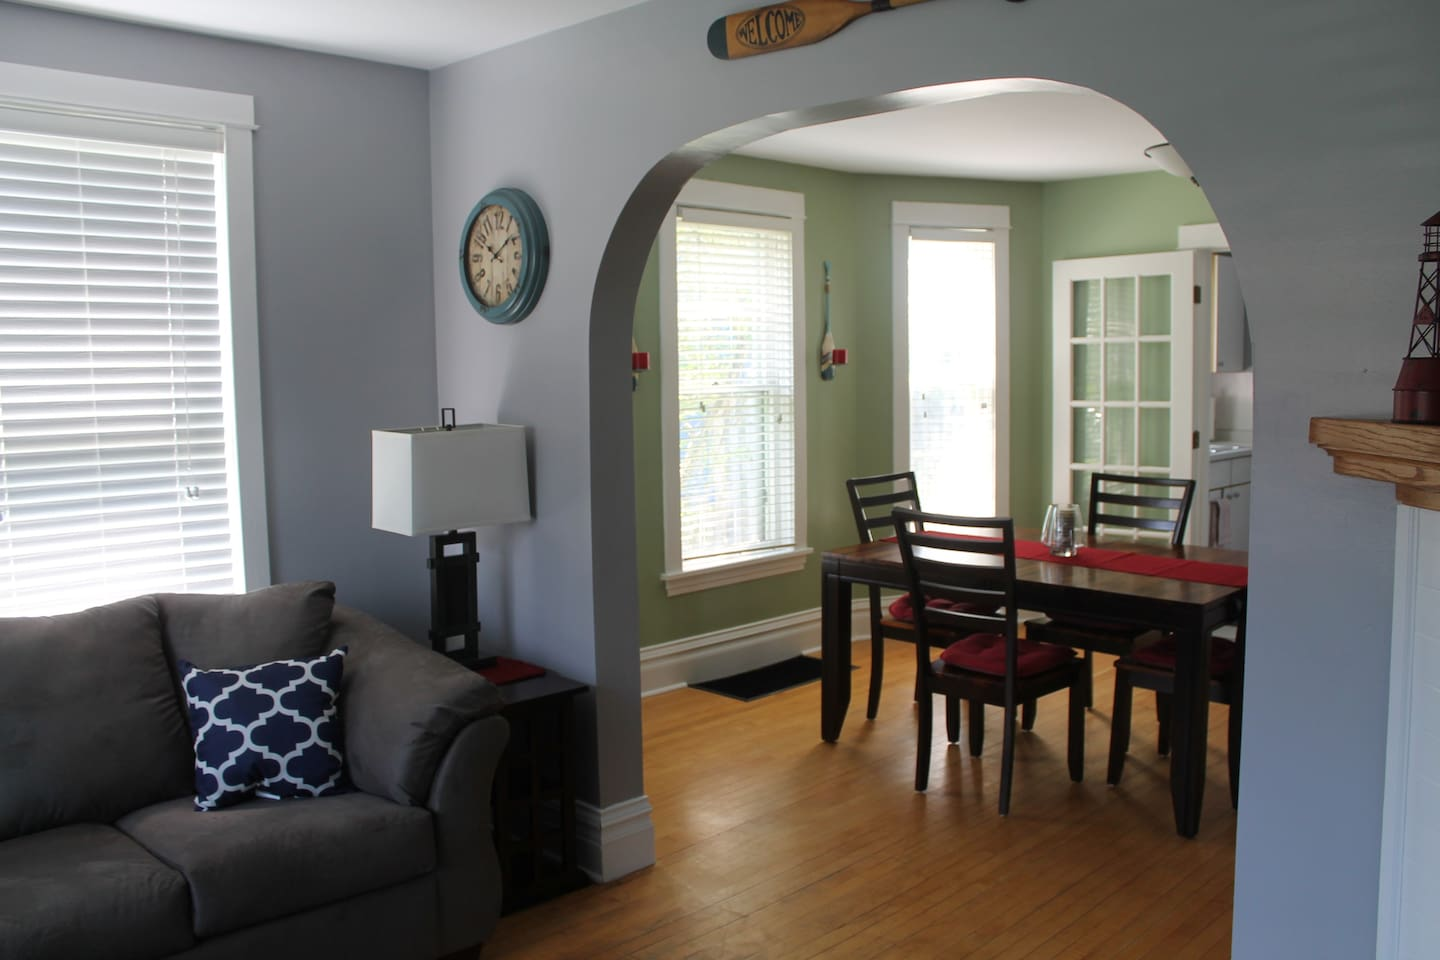 anchors away apartments for rent in duluth minnesota united